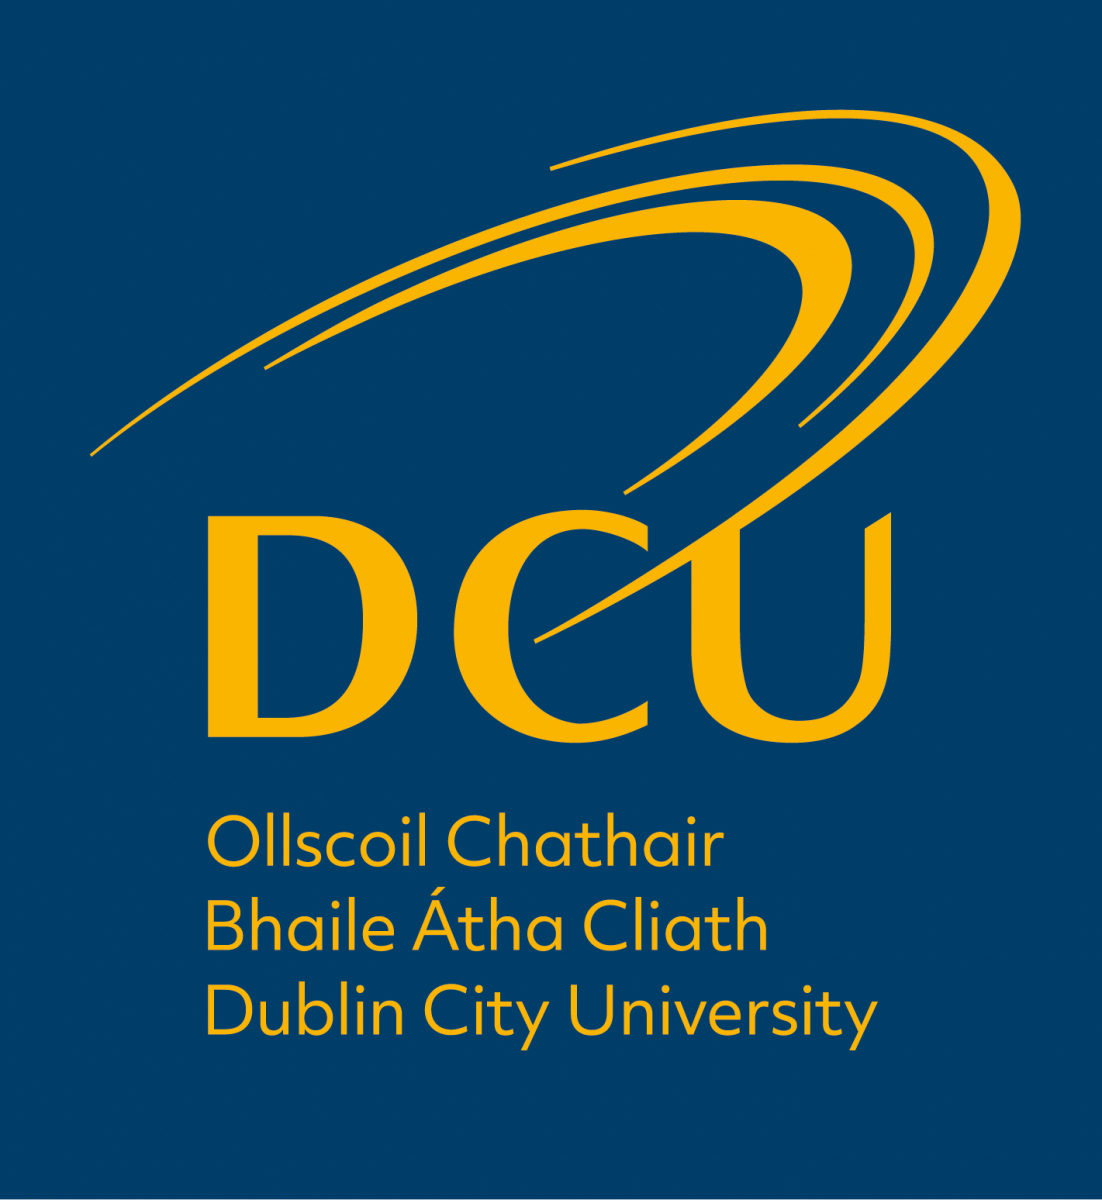 logo_Dublin City University